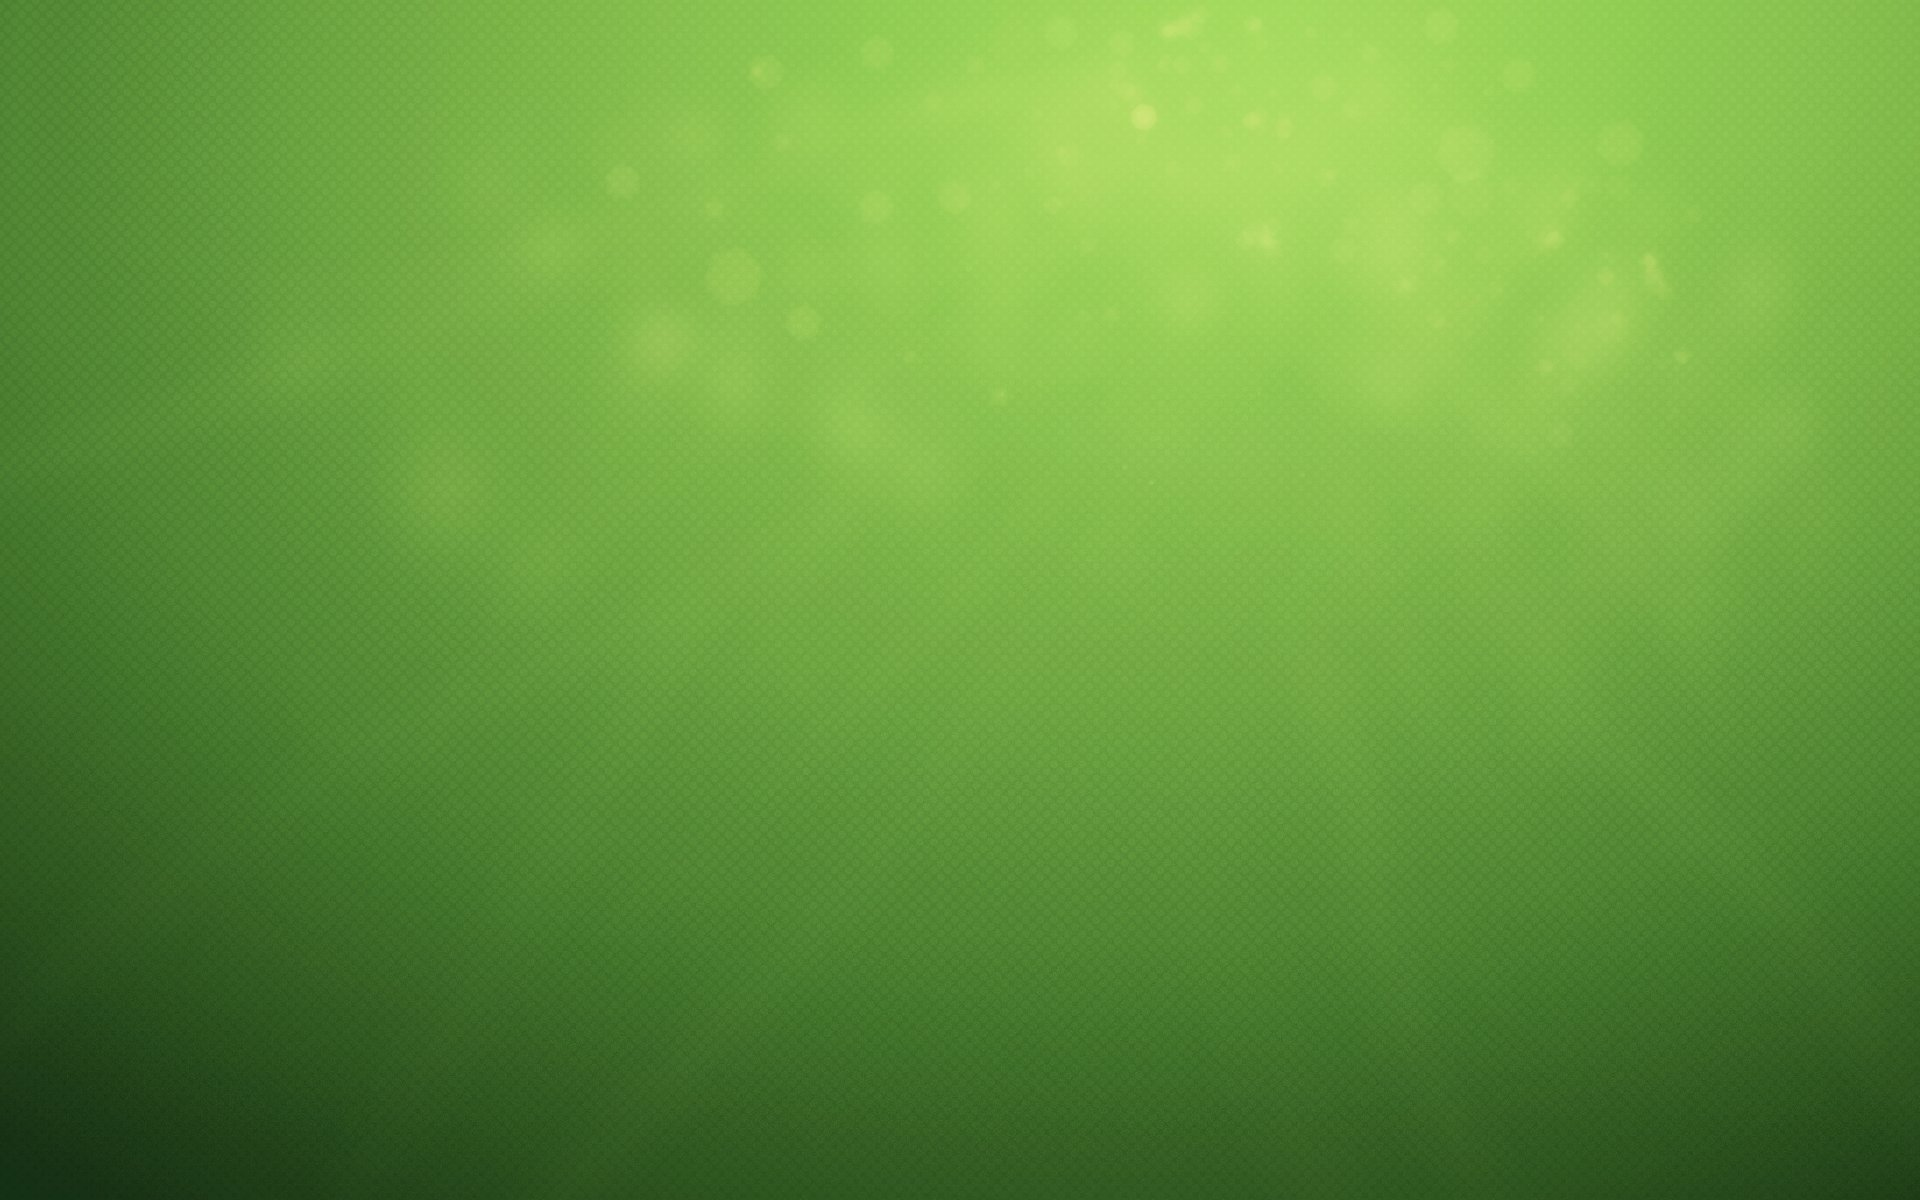 OpenSUSE 12.2 1920x1200.png